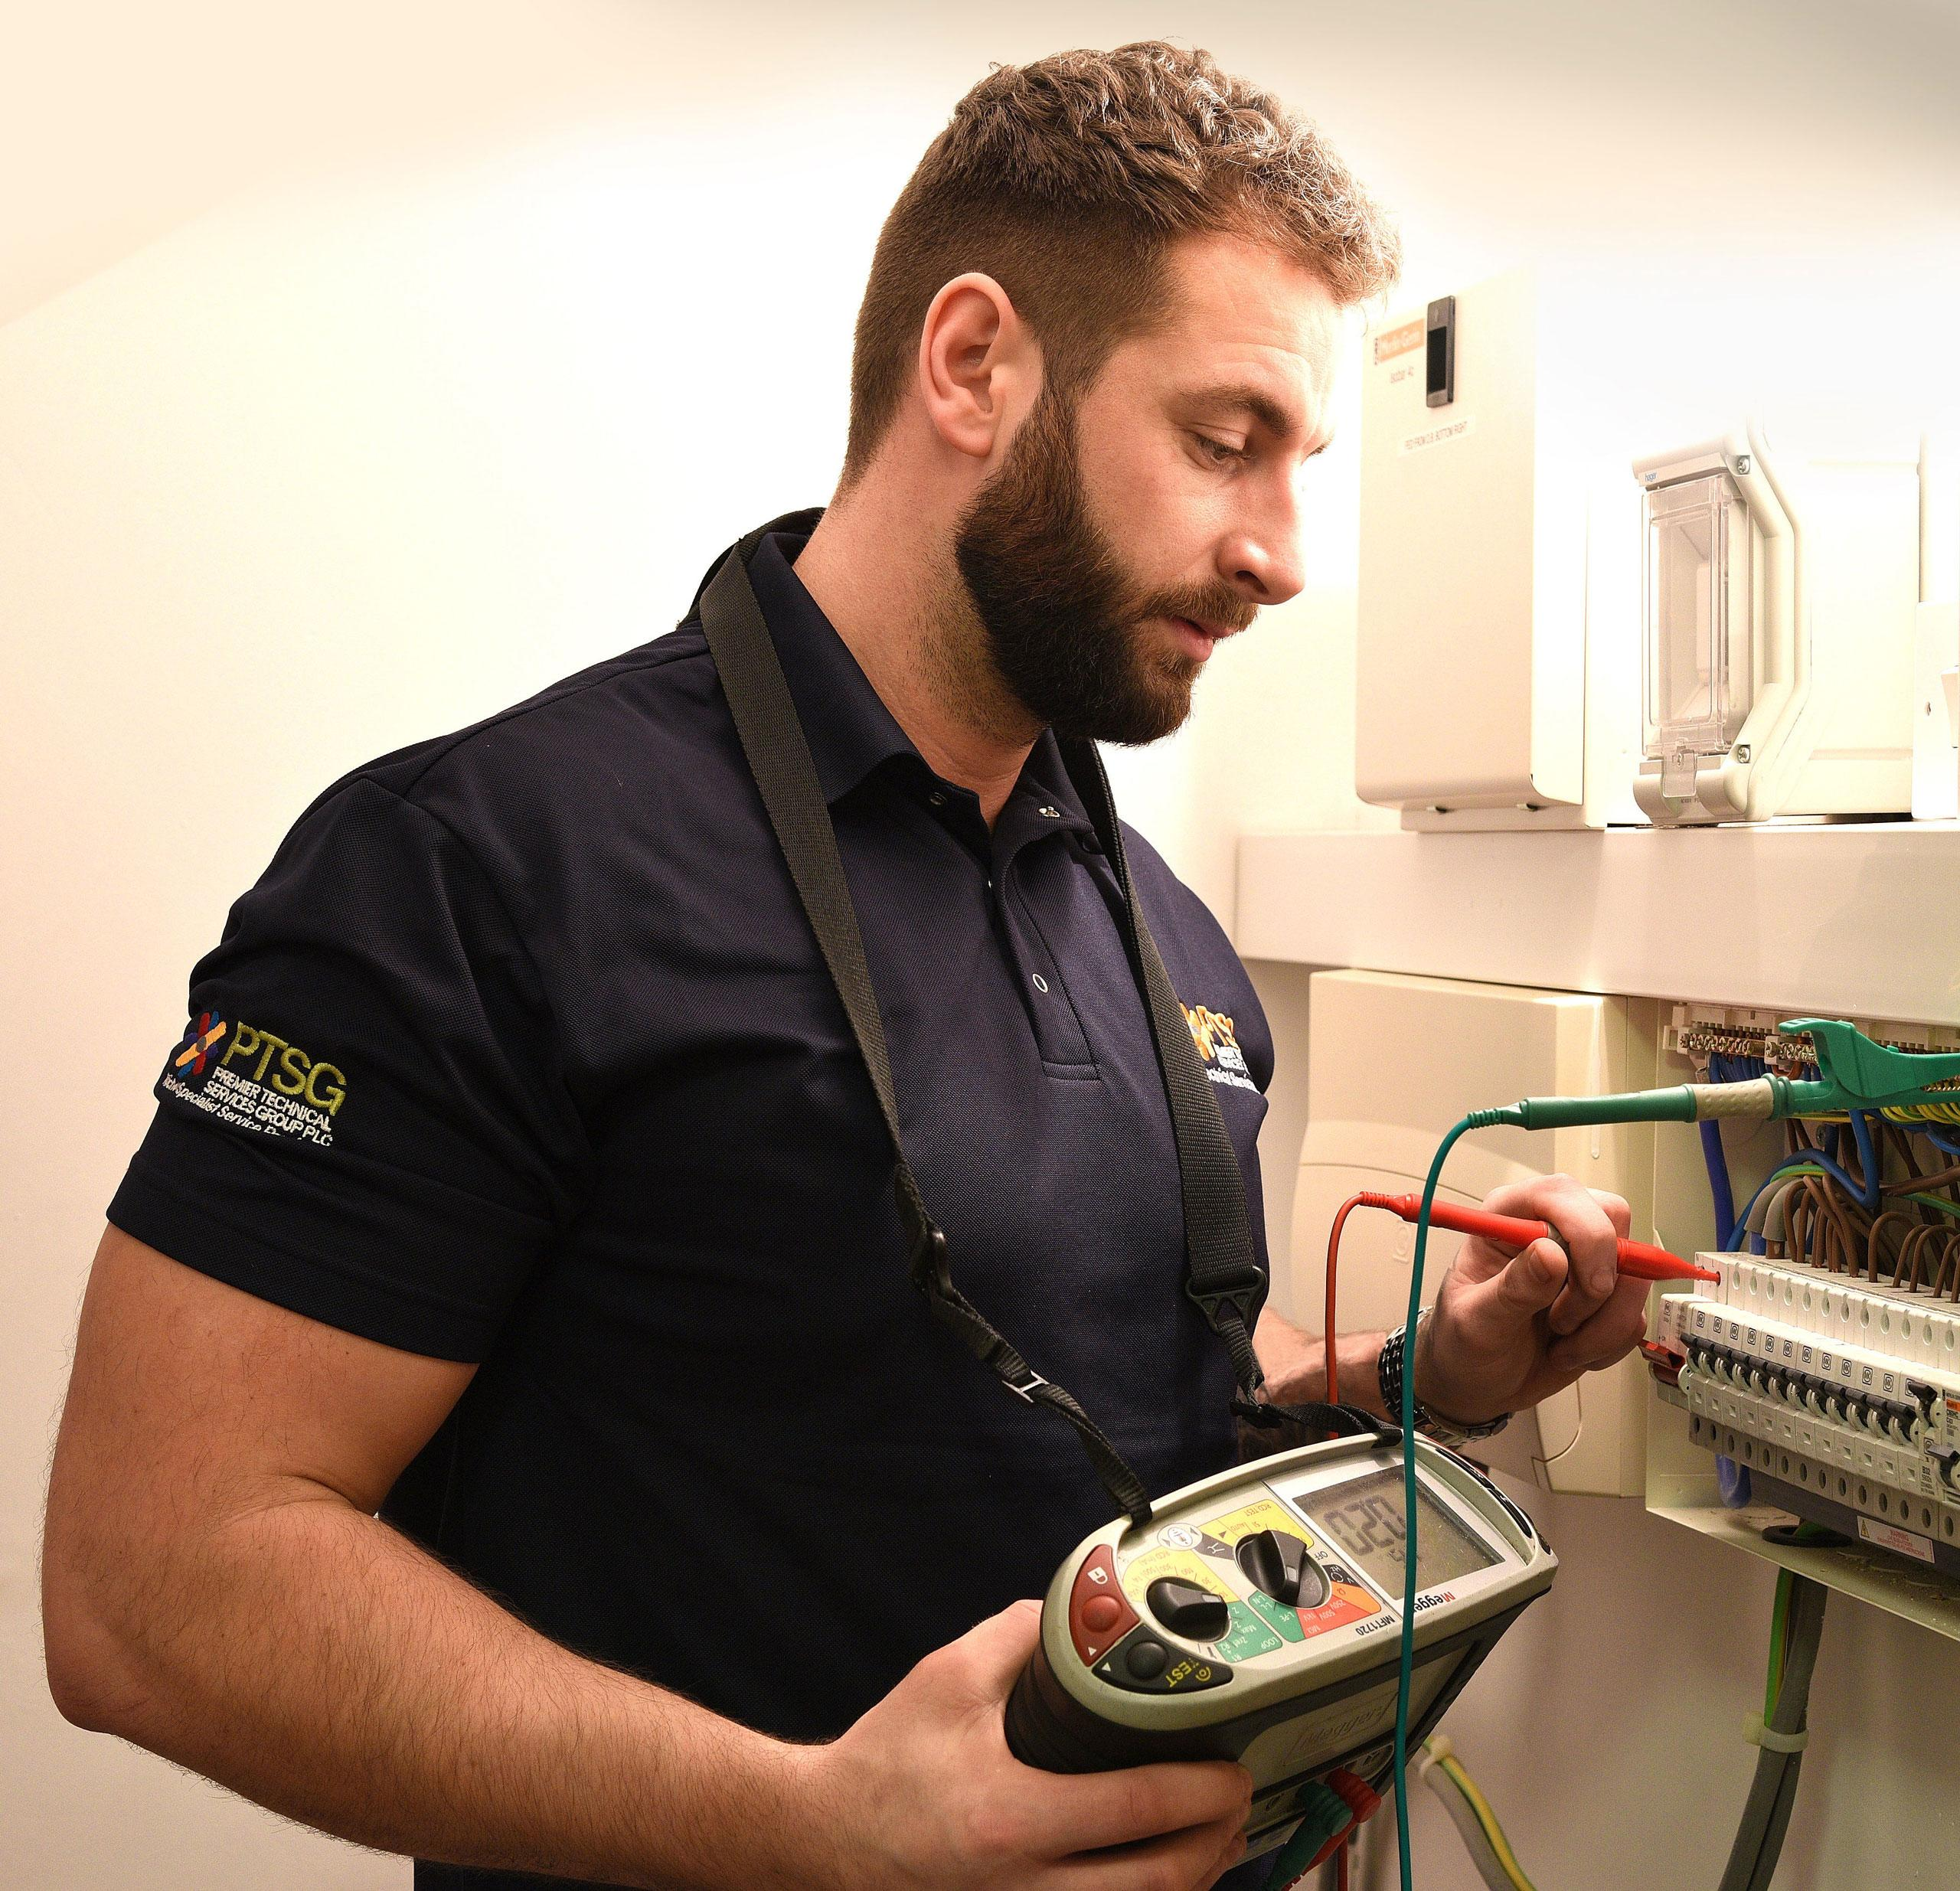 PTSG to deliver electrical inspections for London Borough of Hackney